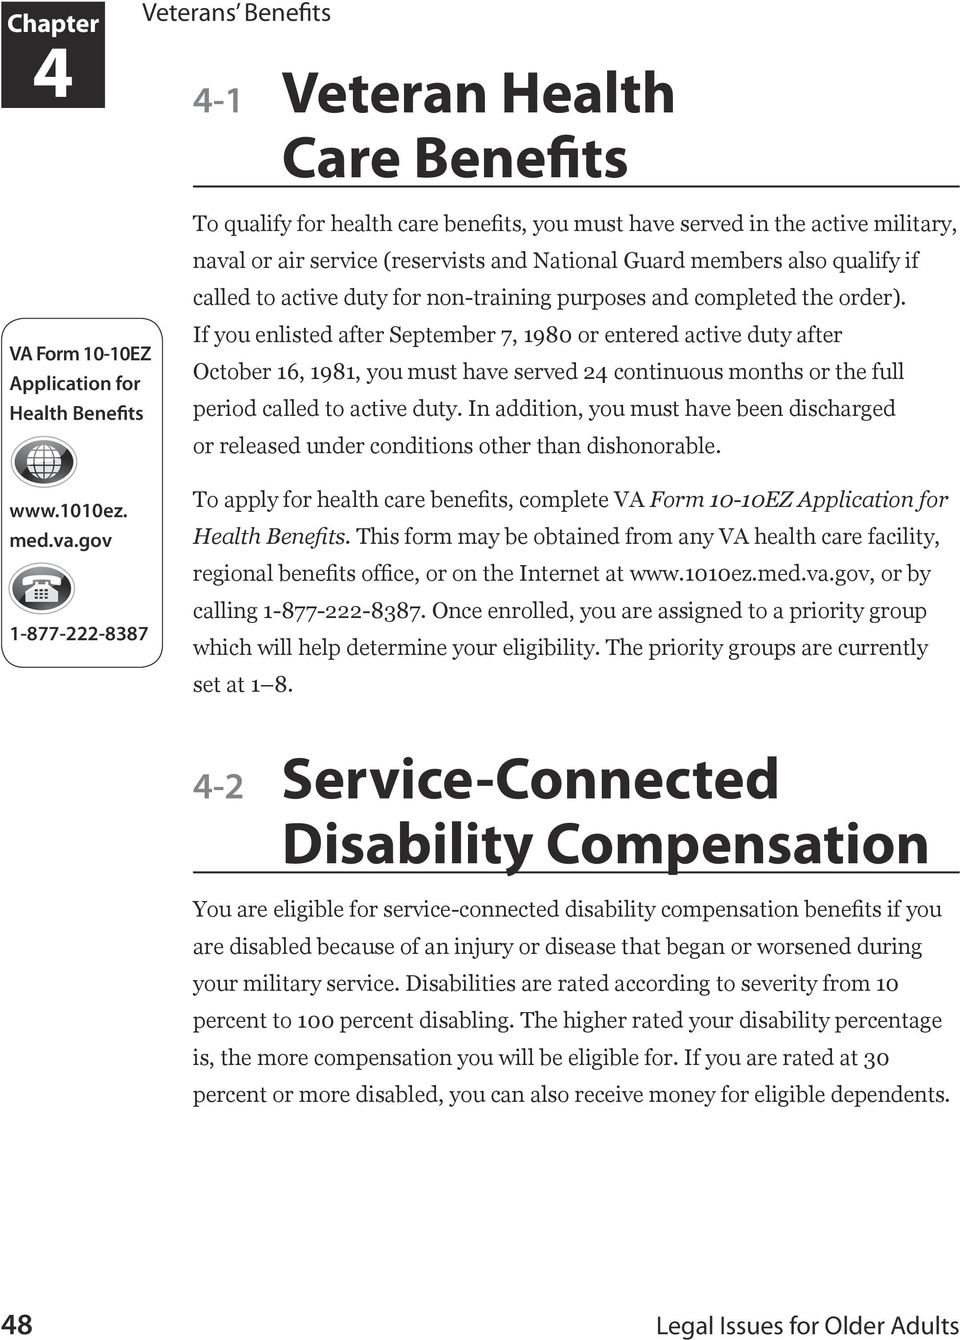 Veterans Benefits  Chapter  In This Chapter - PDF